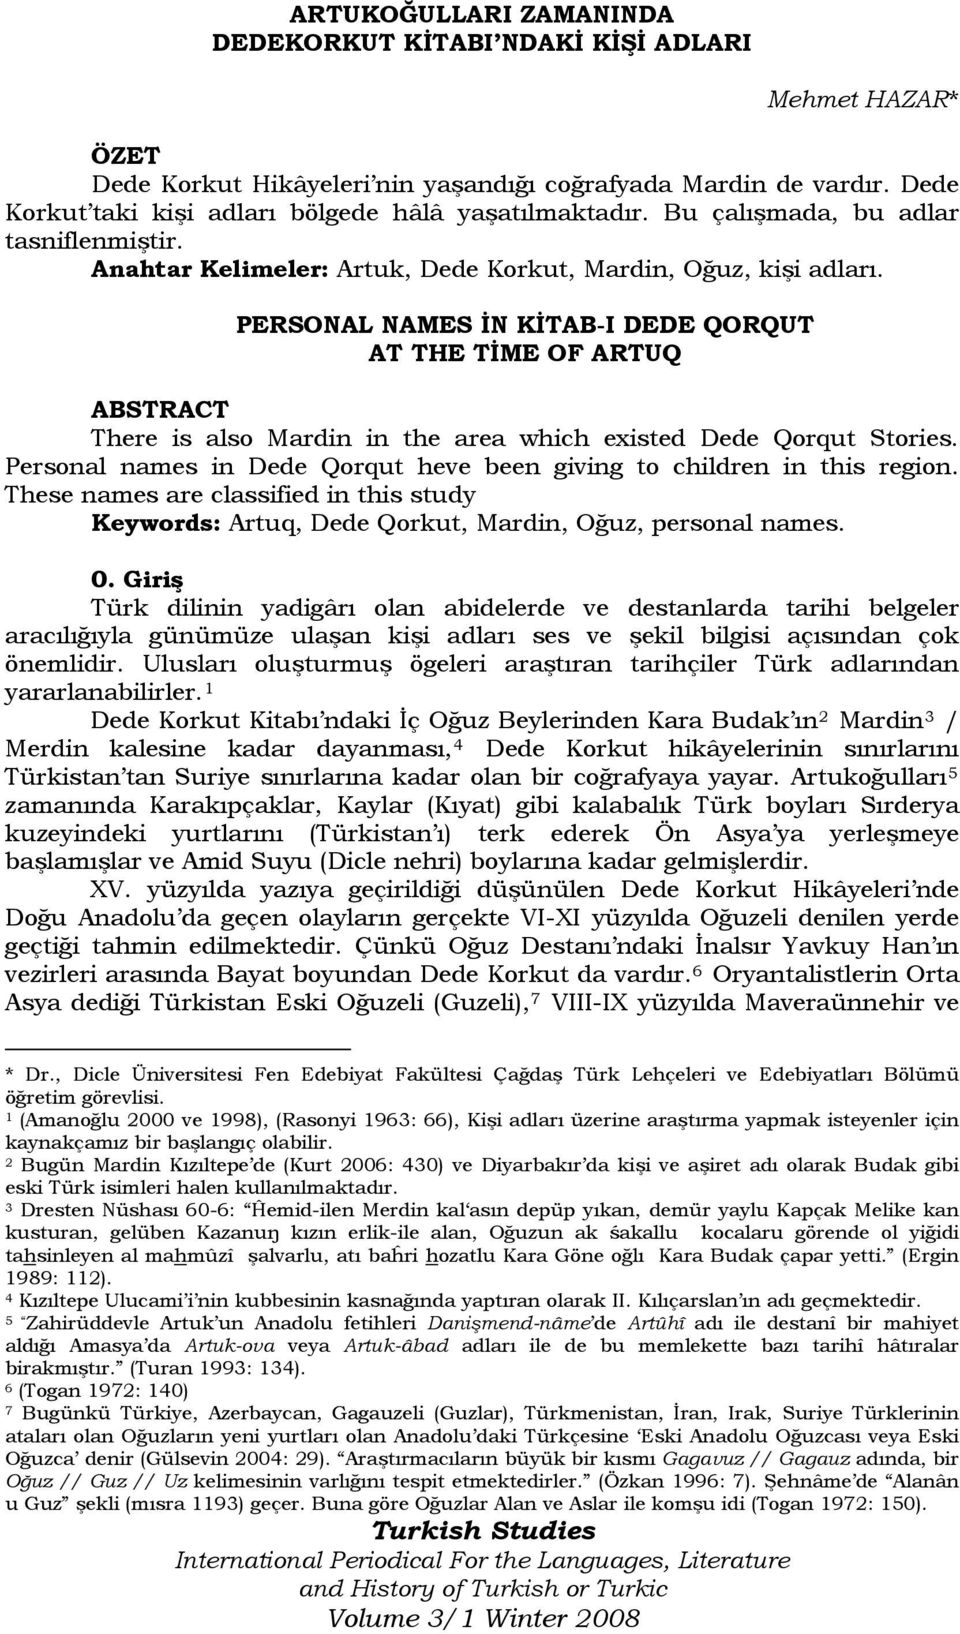 PERSONAL NAMES İN KİTAB-I DEDE QORQUT AT THE TİME OF ARTUQ ABSTRACT There is also Mardin in the area which existed Dede Qorqut Stories.